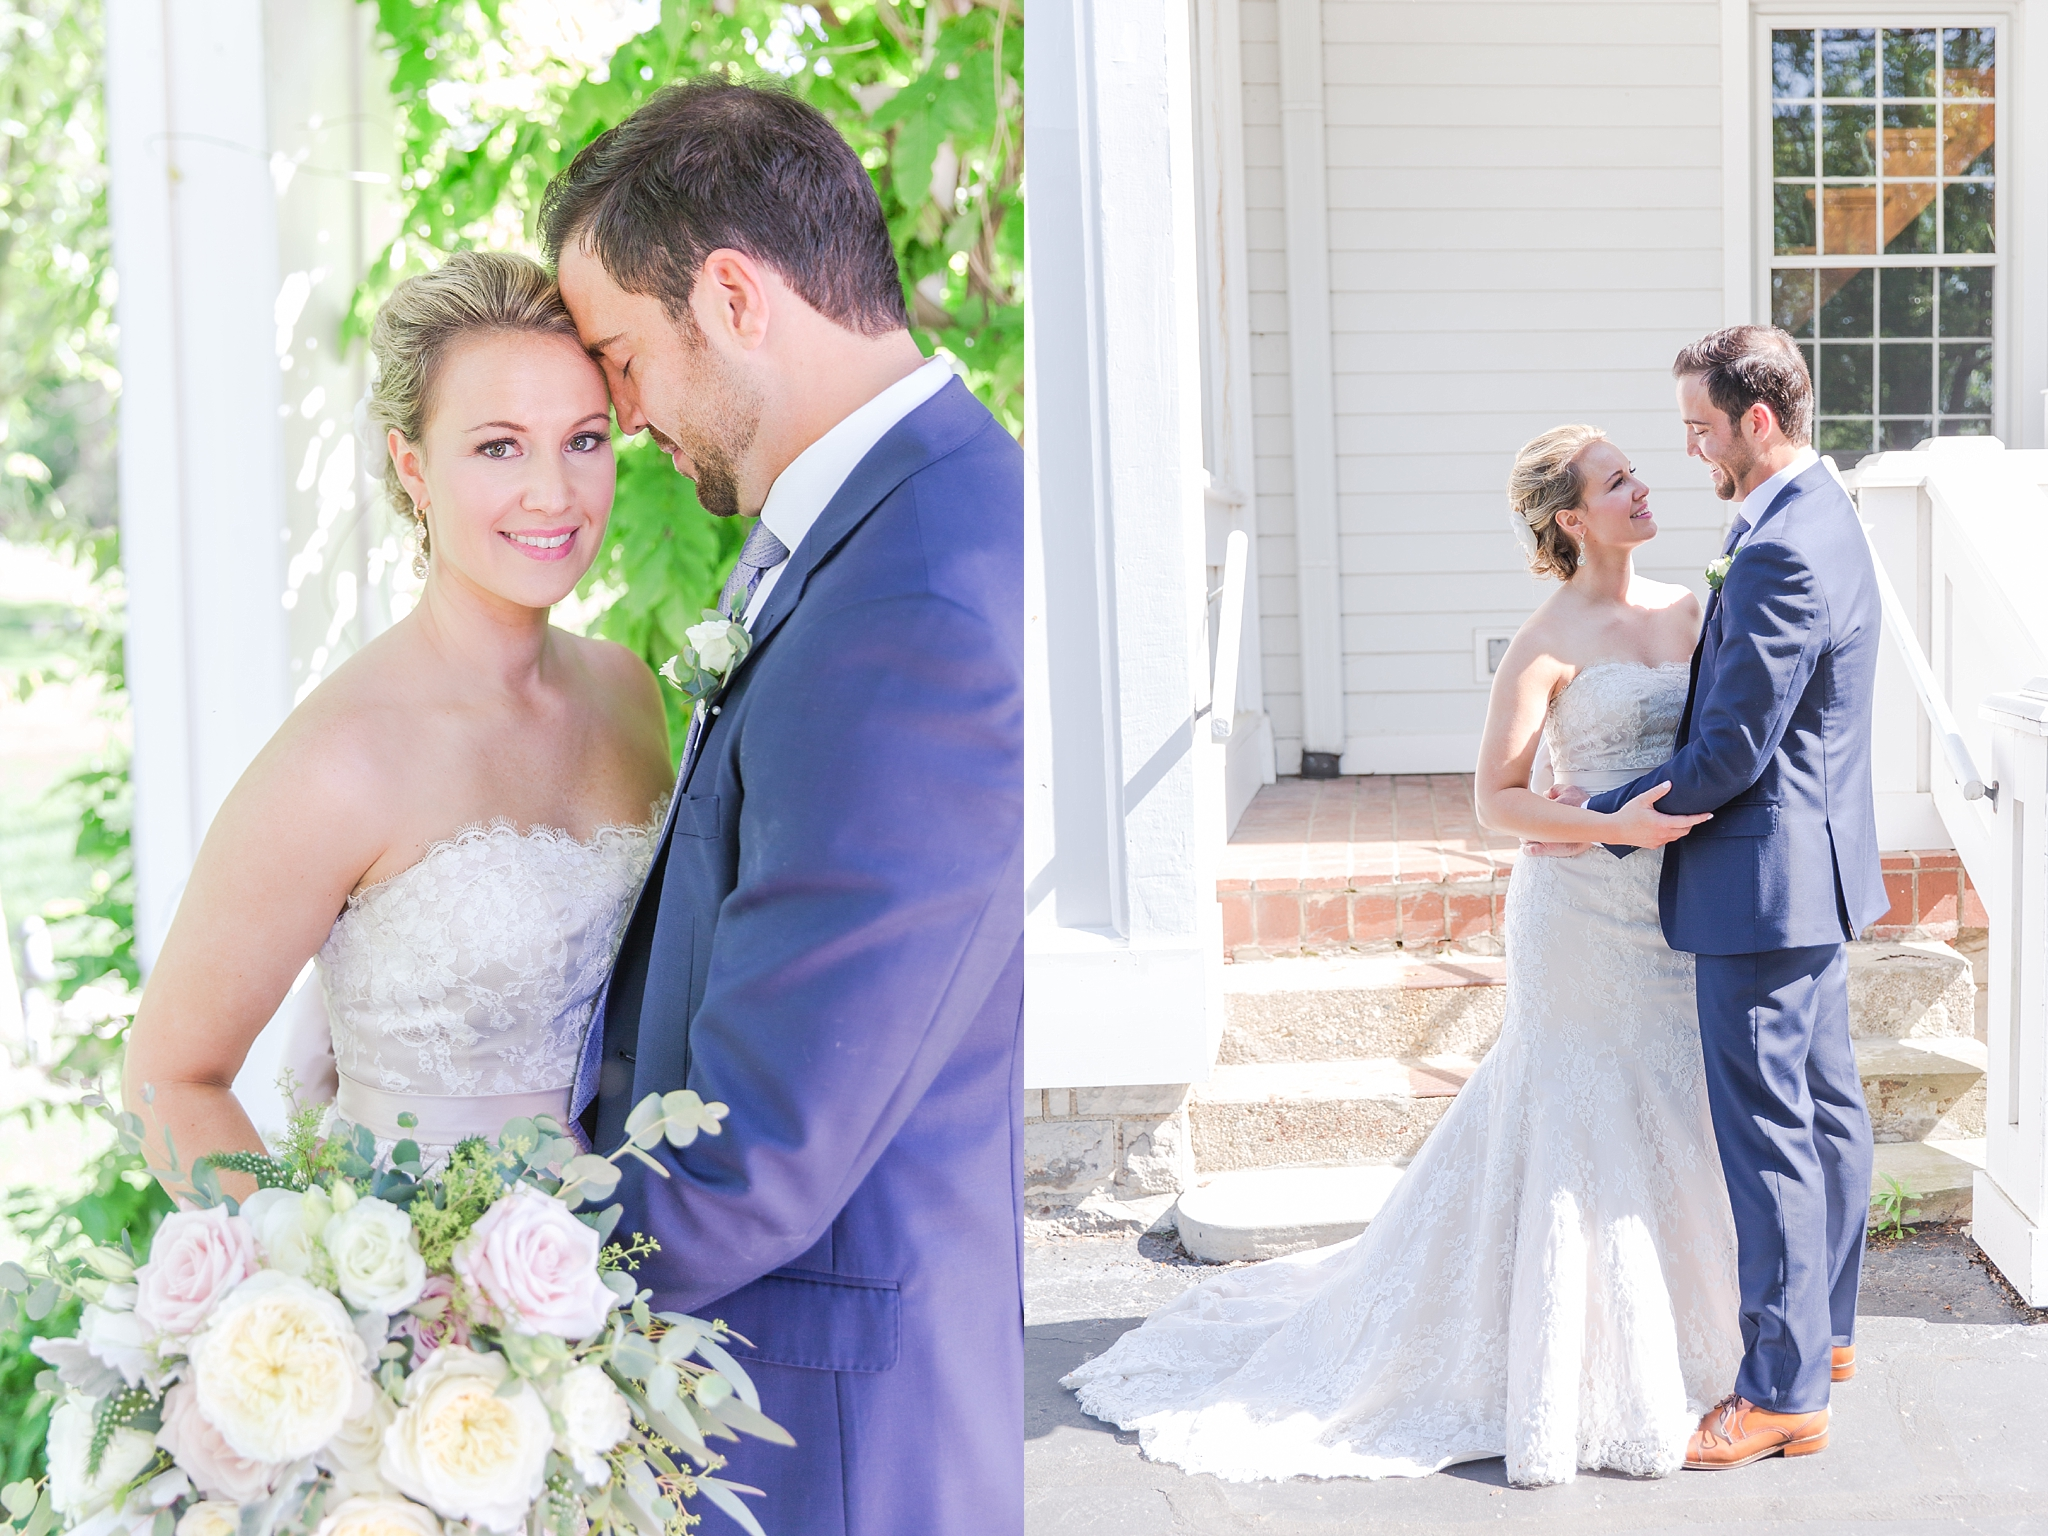 fun-candid-laid-back-wedding-photos-at-wellers-carriage-house-in-saline-michigan-and-at-the-eagle-crest-golf-resort-by-courtney-carolyn-photography_0037.jpg